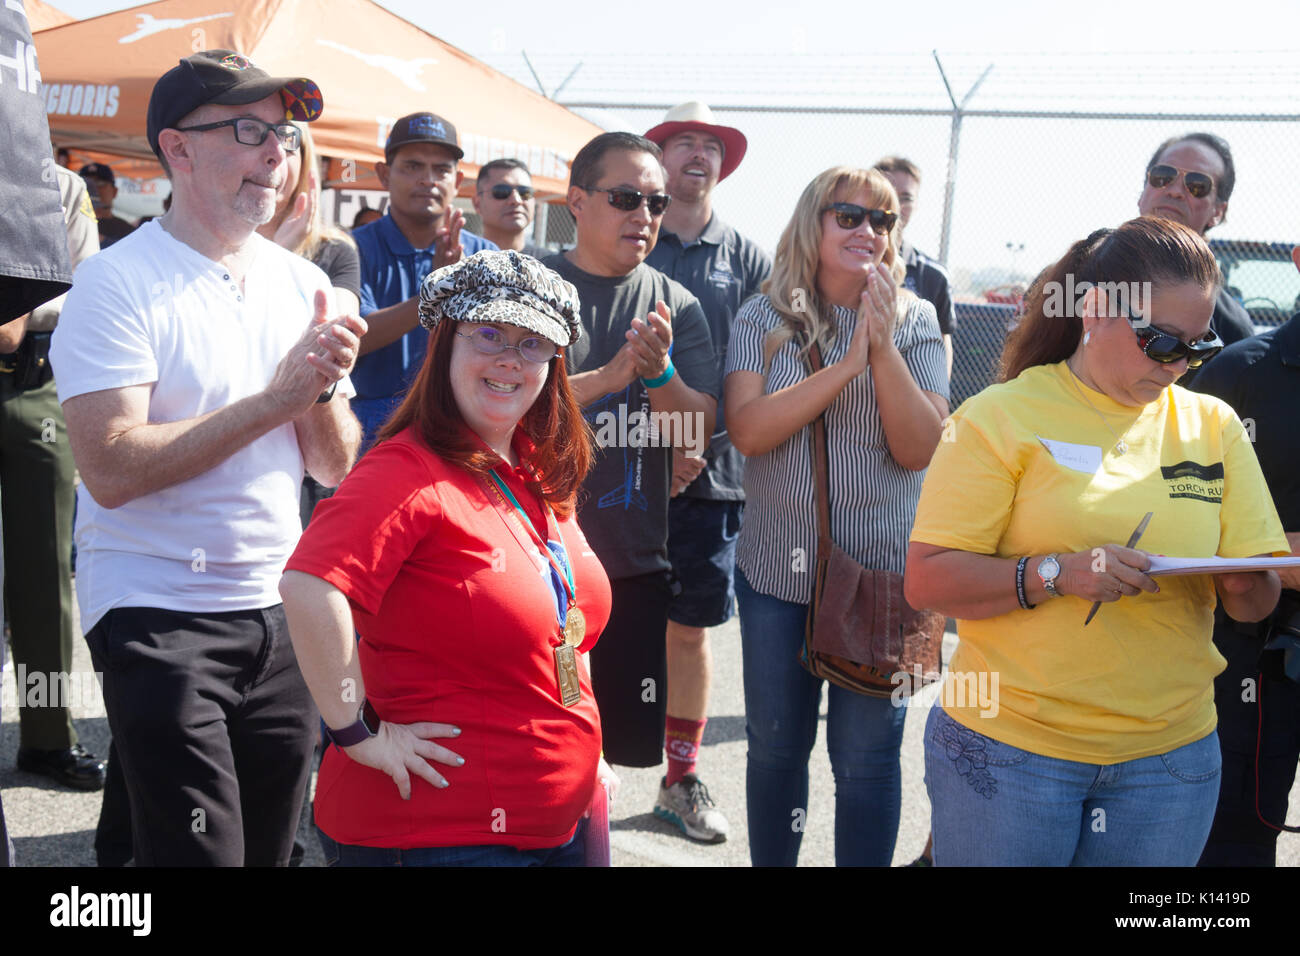 August 19, 2017 - Reality TV star, Rachel Osterbach (Born This Way), participates in the Special Olympics Southern California Plane Pull at the Long B - Stock Image